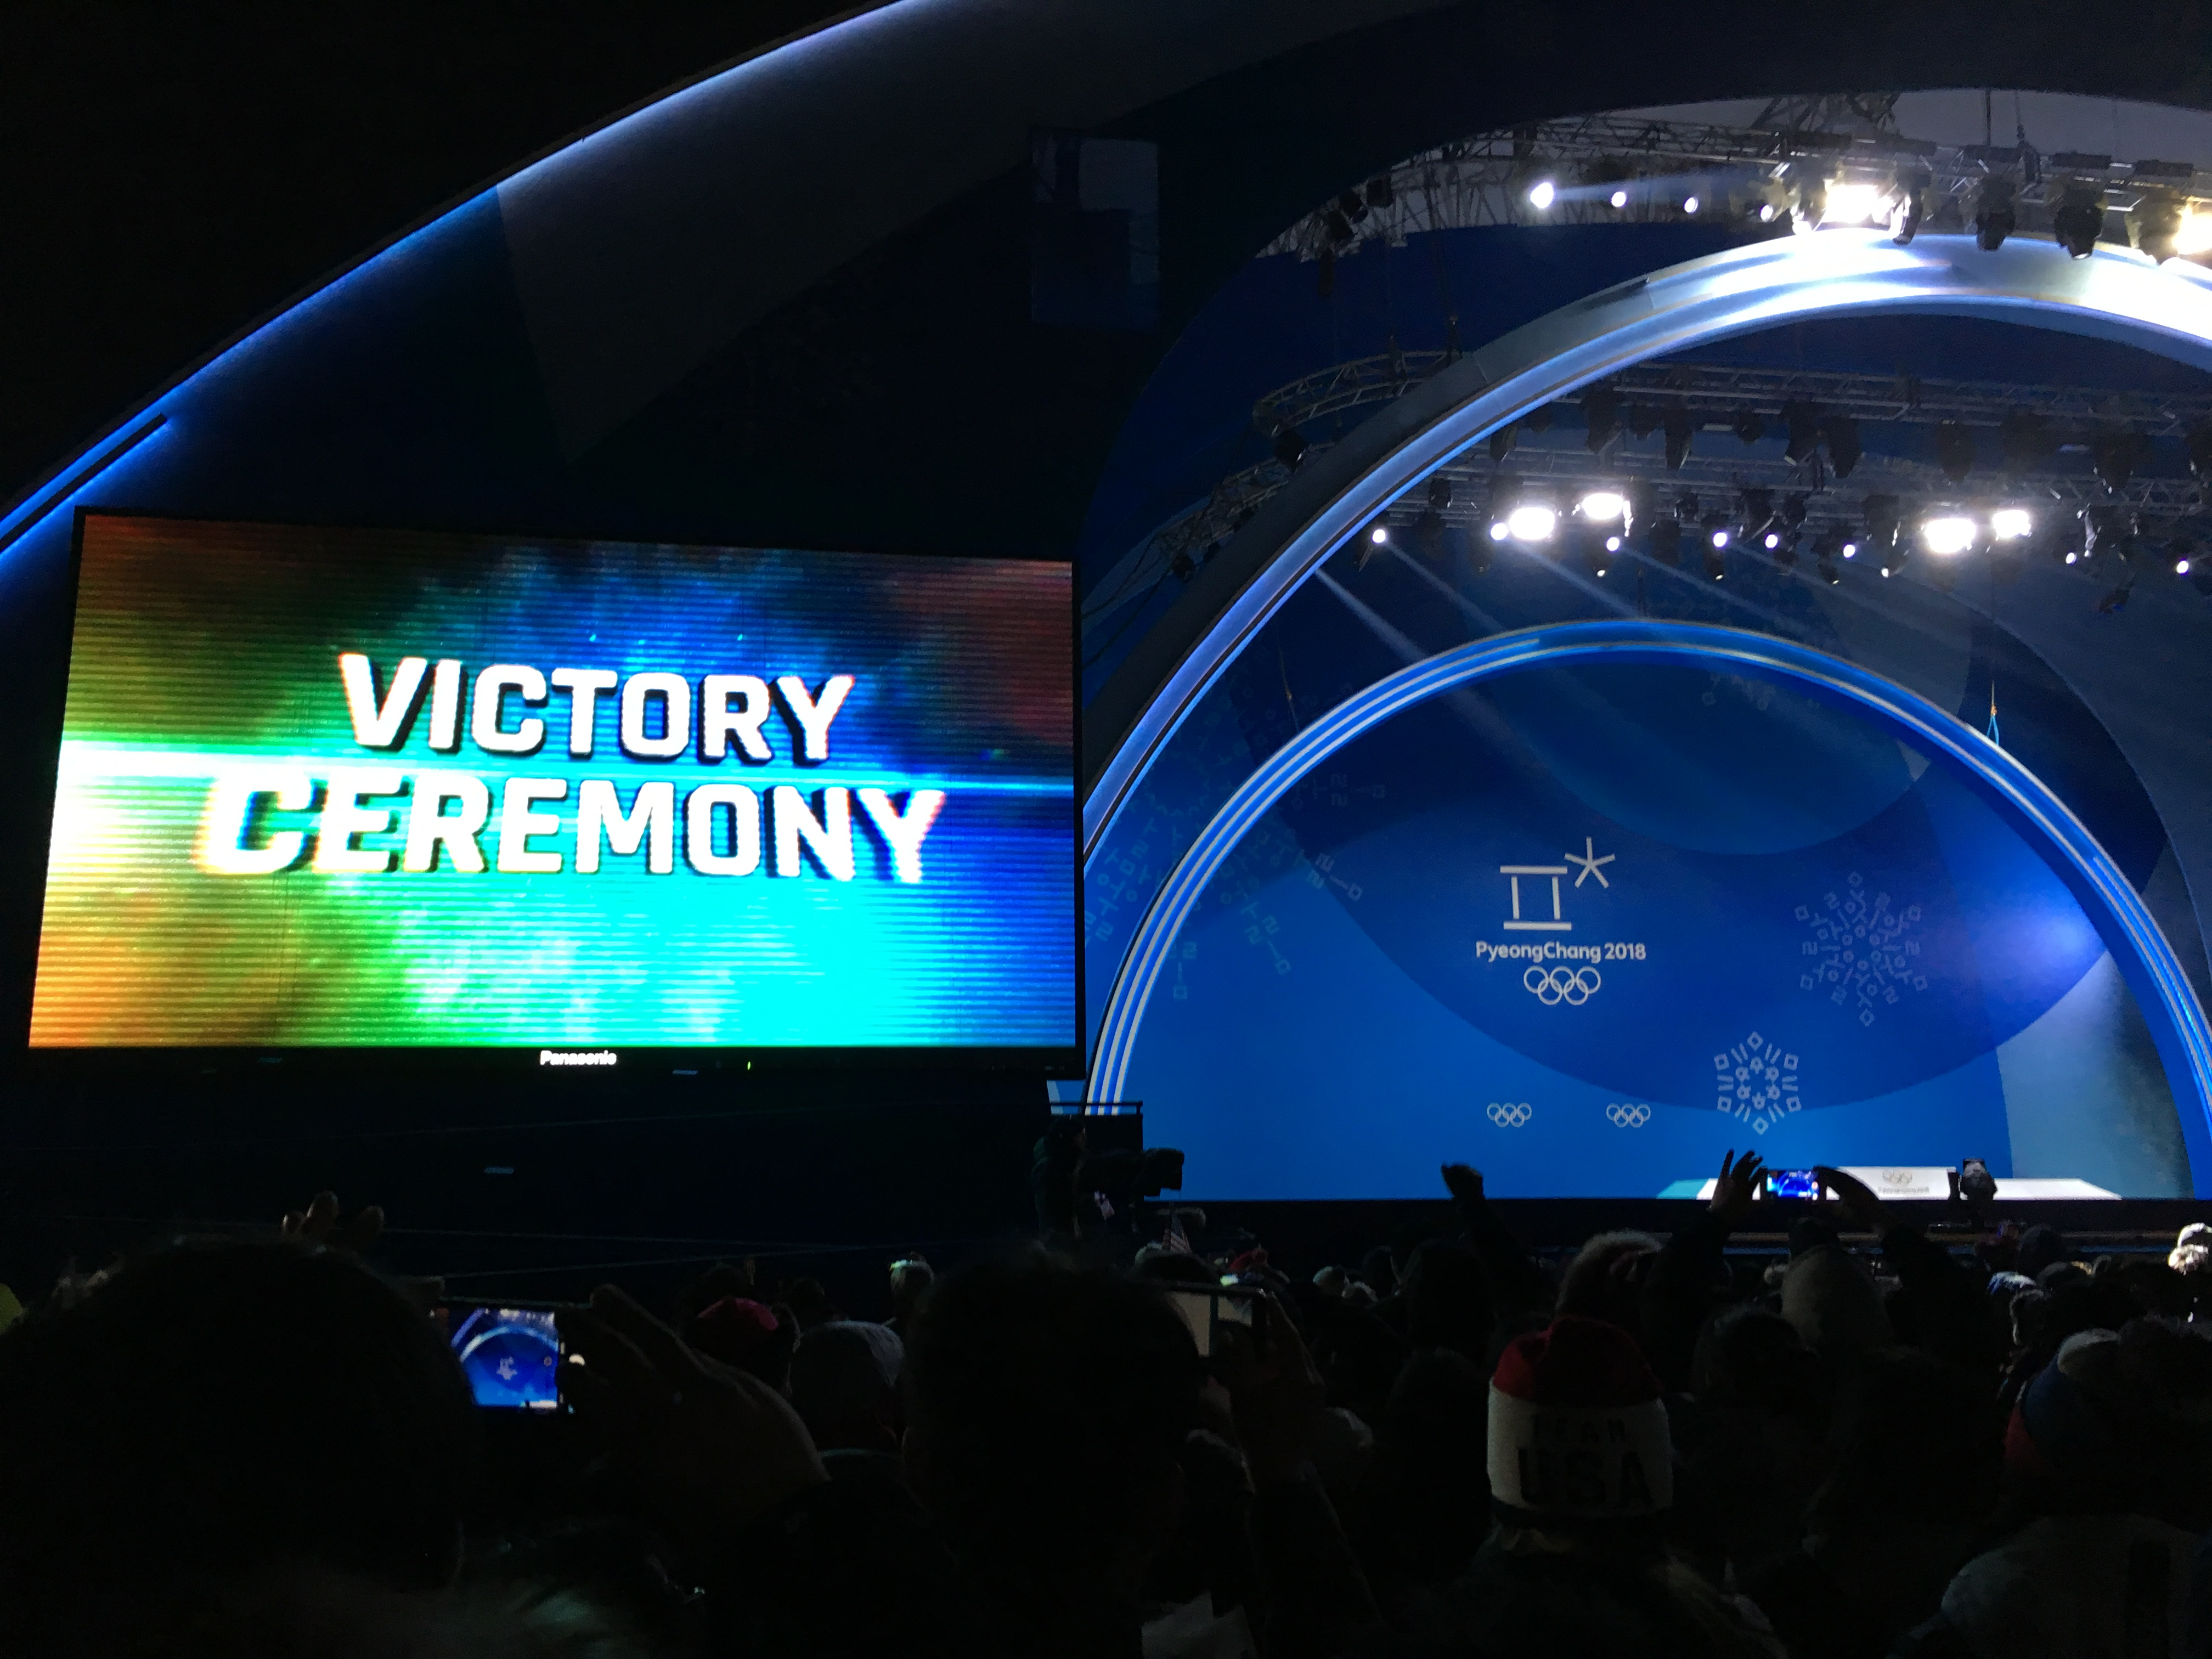 medal cermony stage